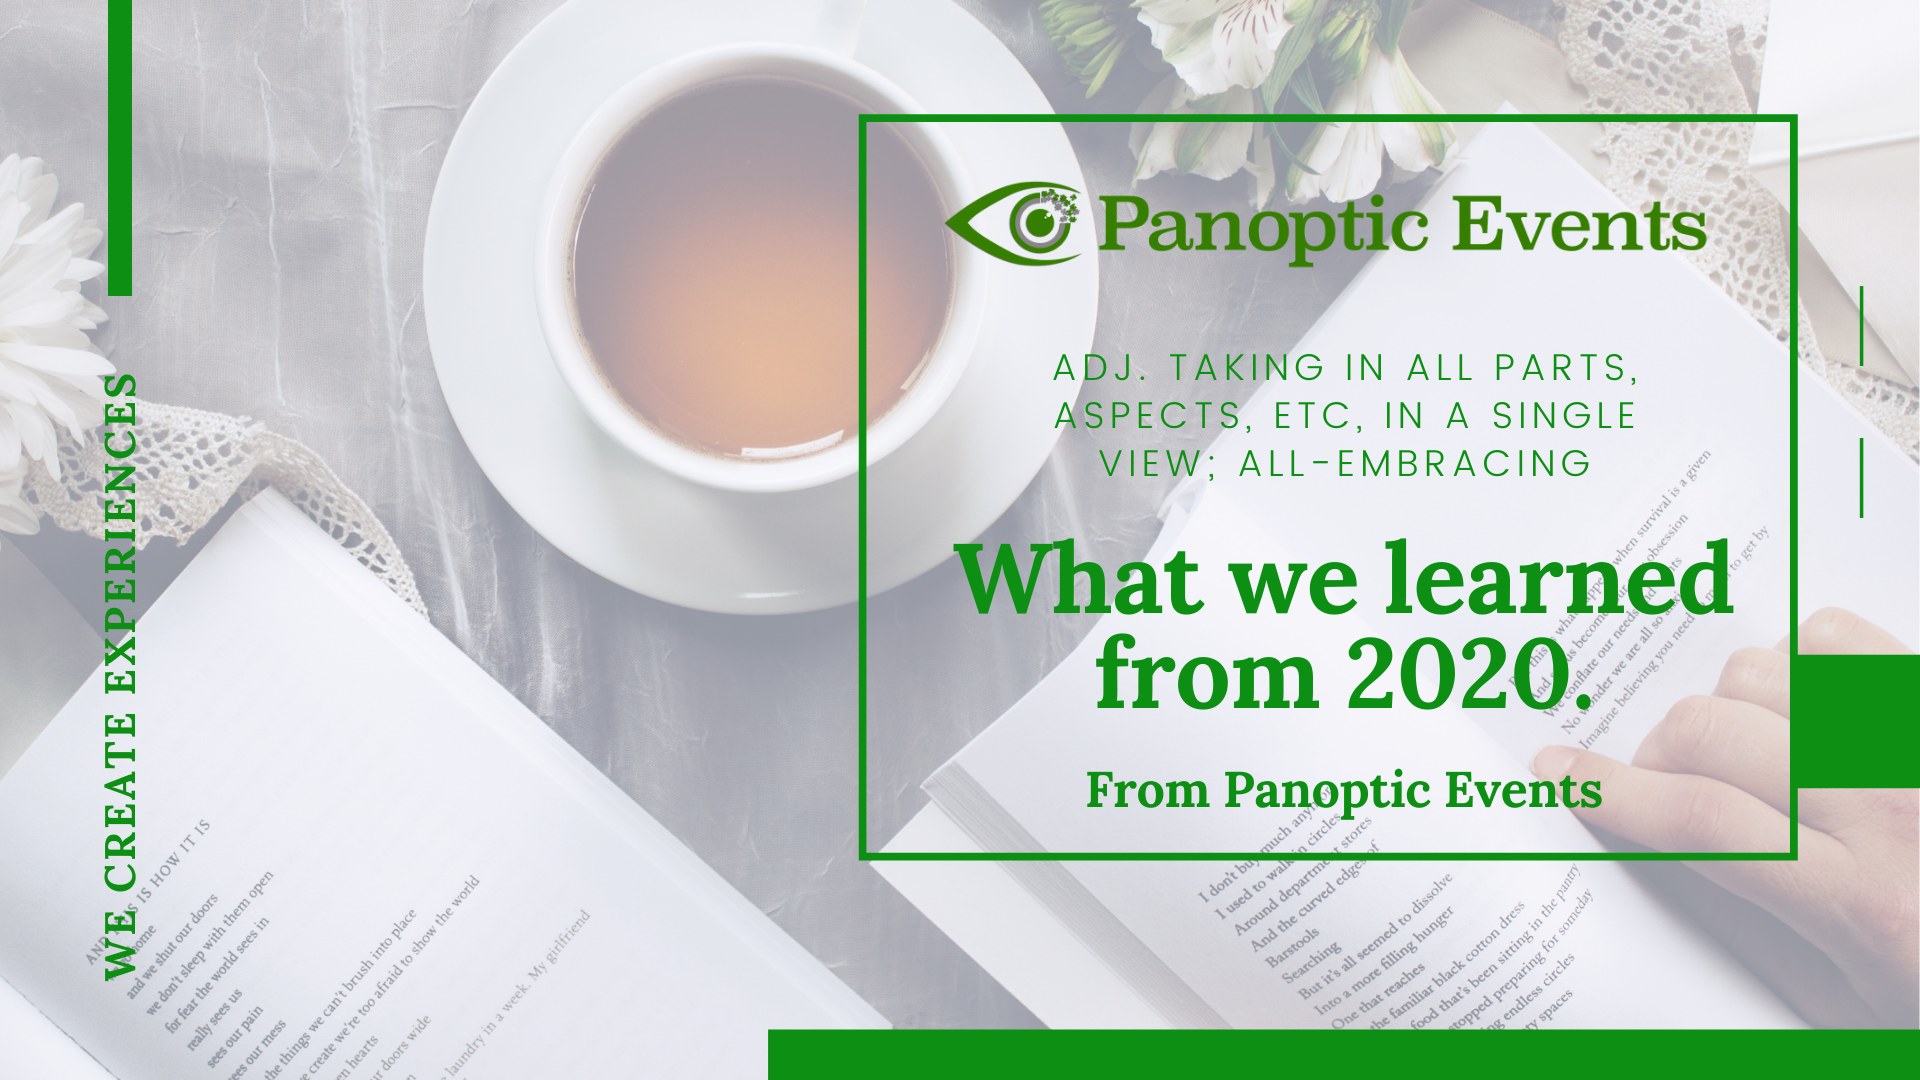 Panoptic Events - 10 things we learned in 2020